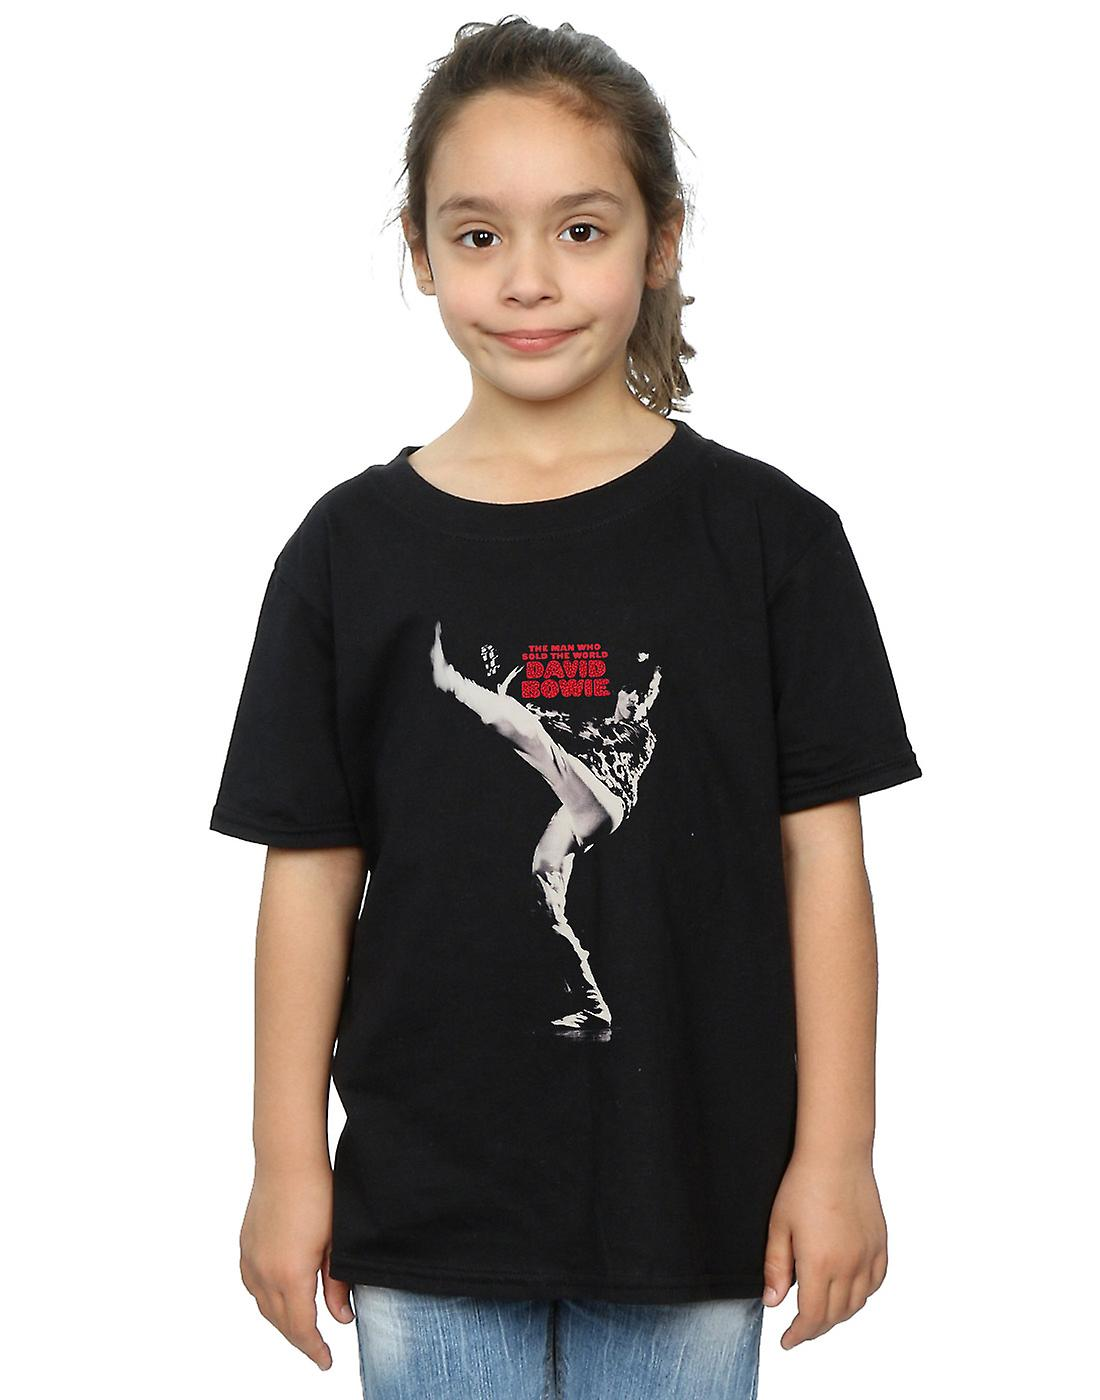 David Bowie Girls The Man Who Sold The World T-Shirt